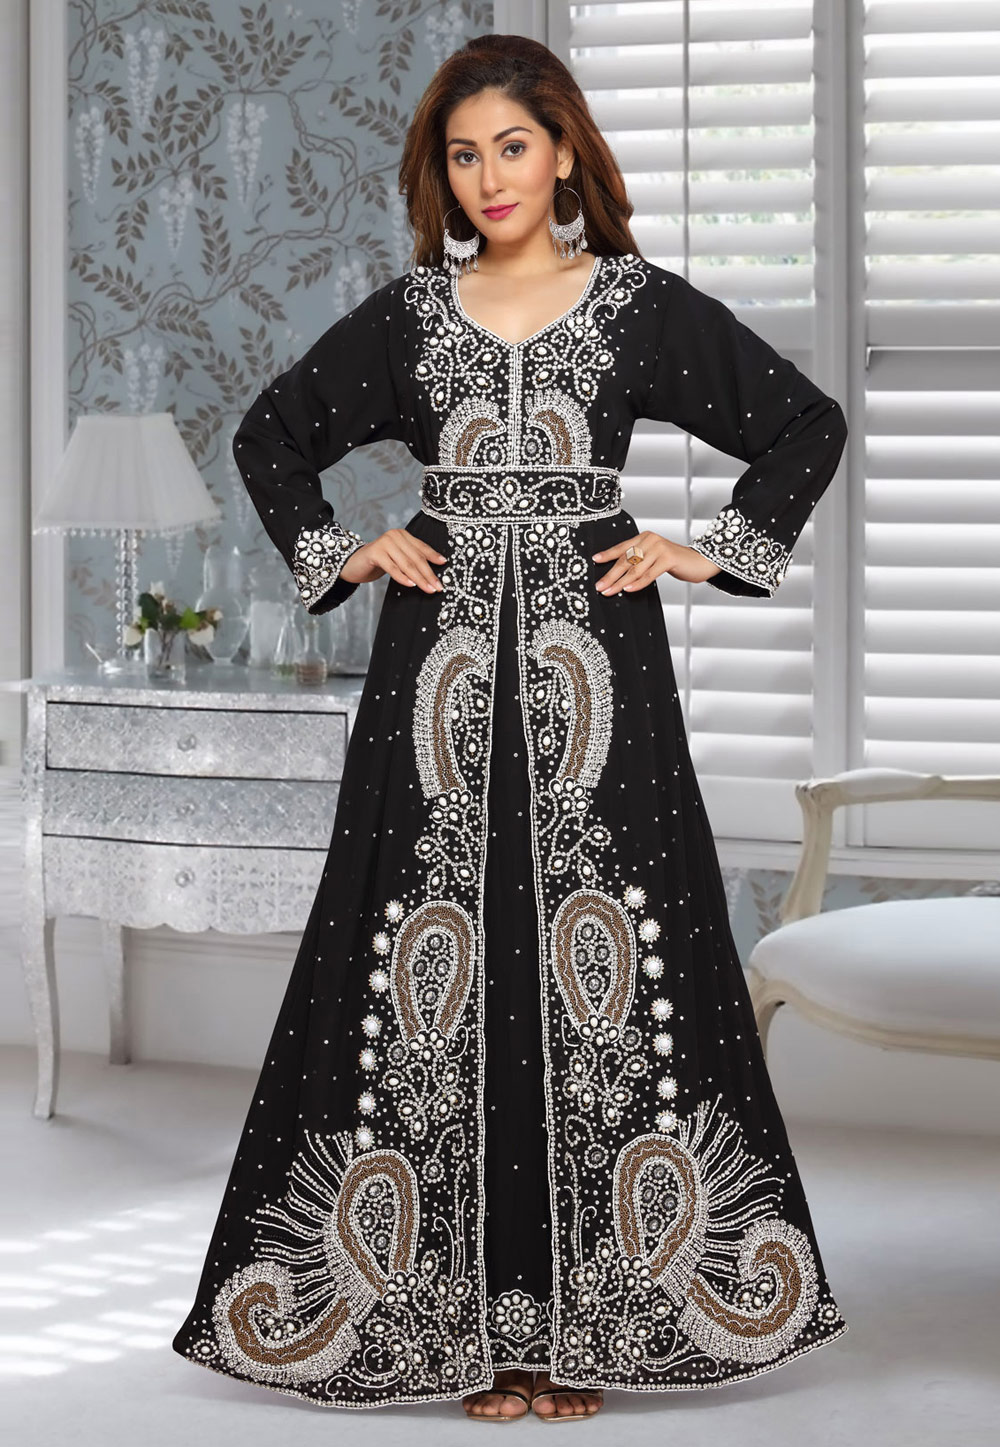 Black Faux Georgette Embroidered Readymade Kaftan 194951